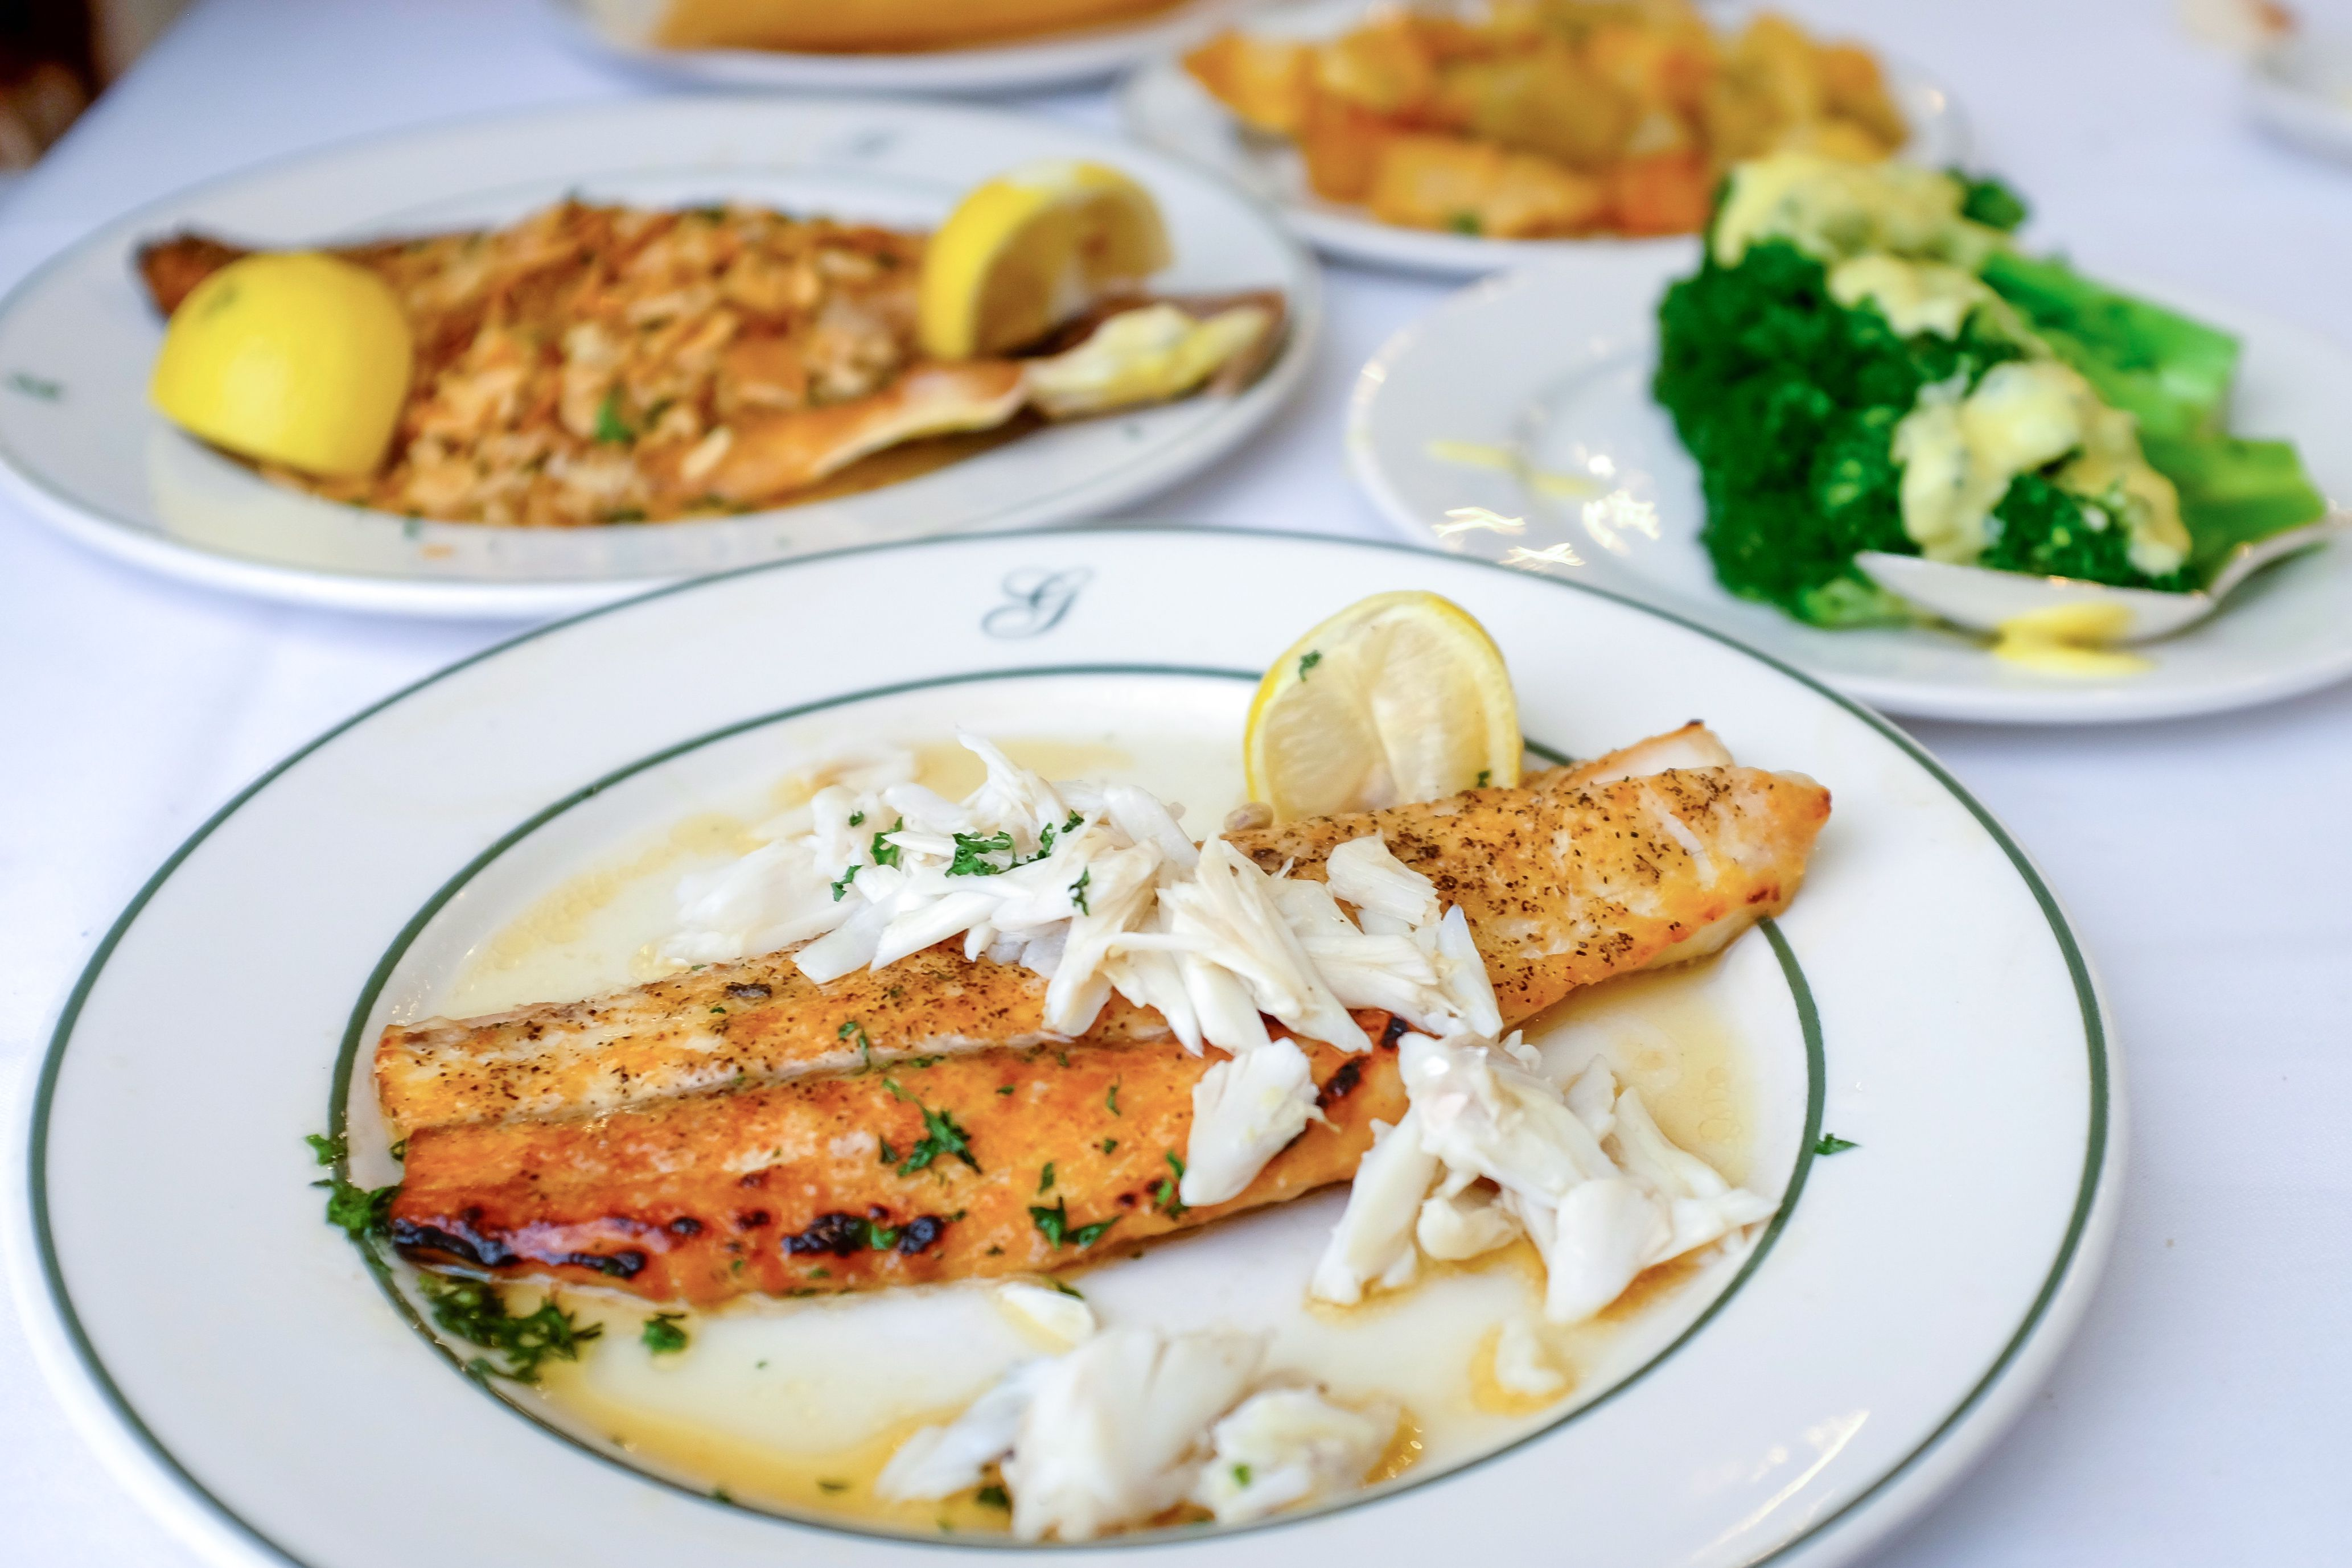 ... maison and shrimp remoulade); Right: Pompano meuniere with crabmeat